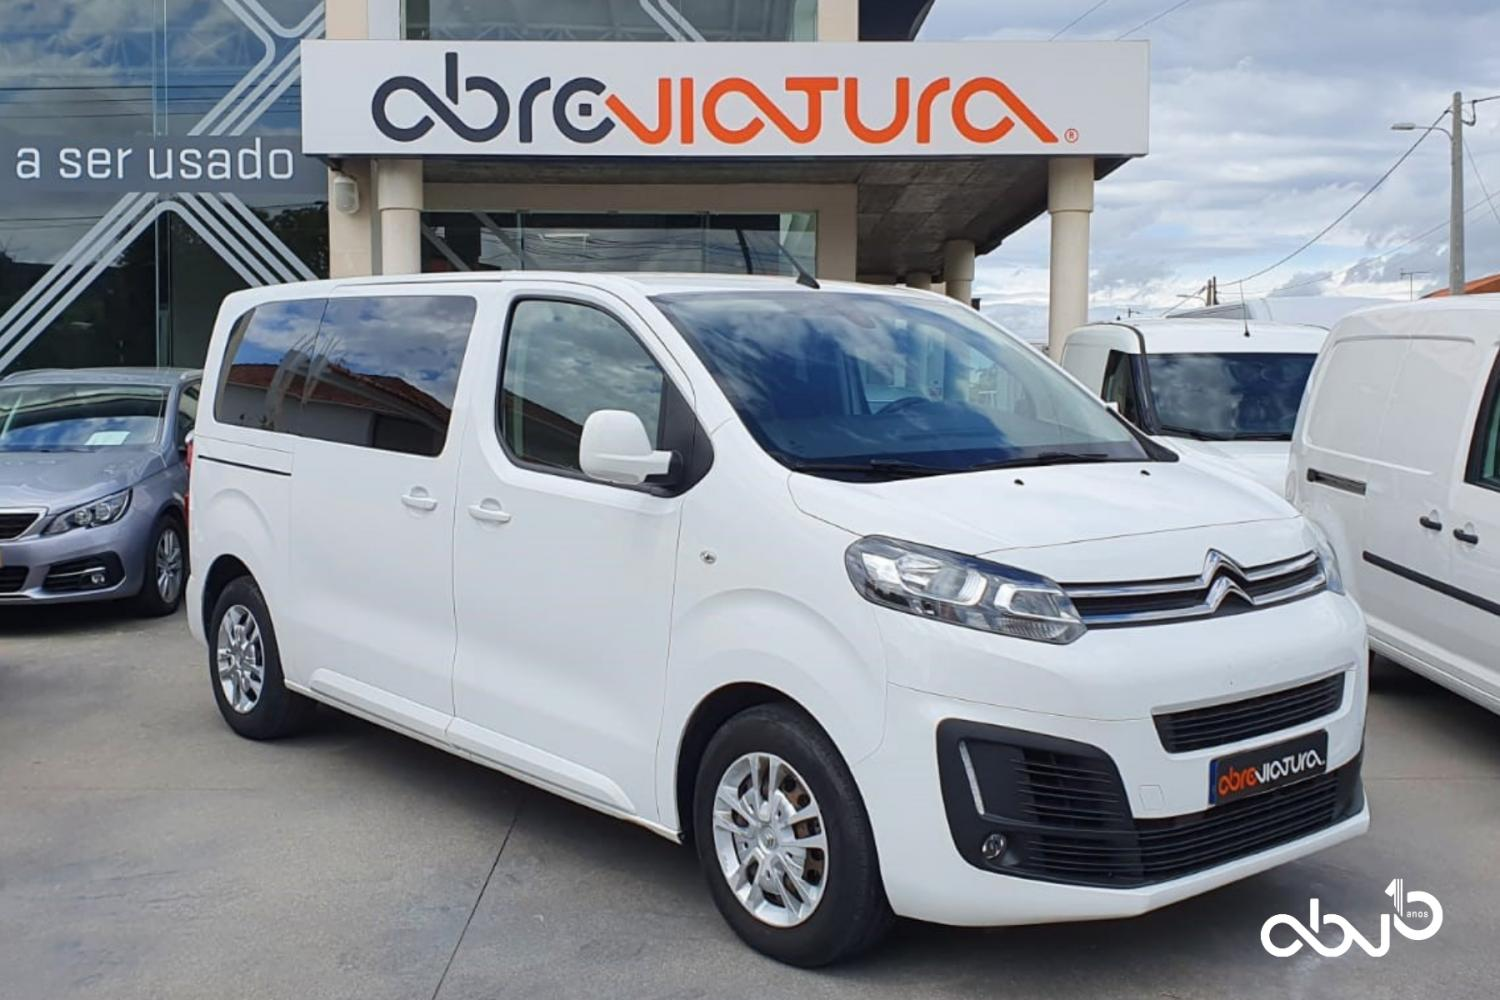 Citroen - Spacetourer  1.6 BlueHDI 115 9L